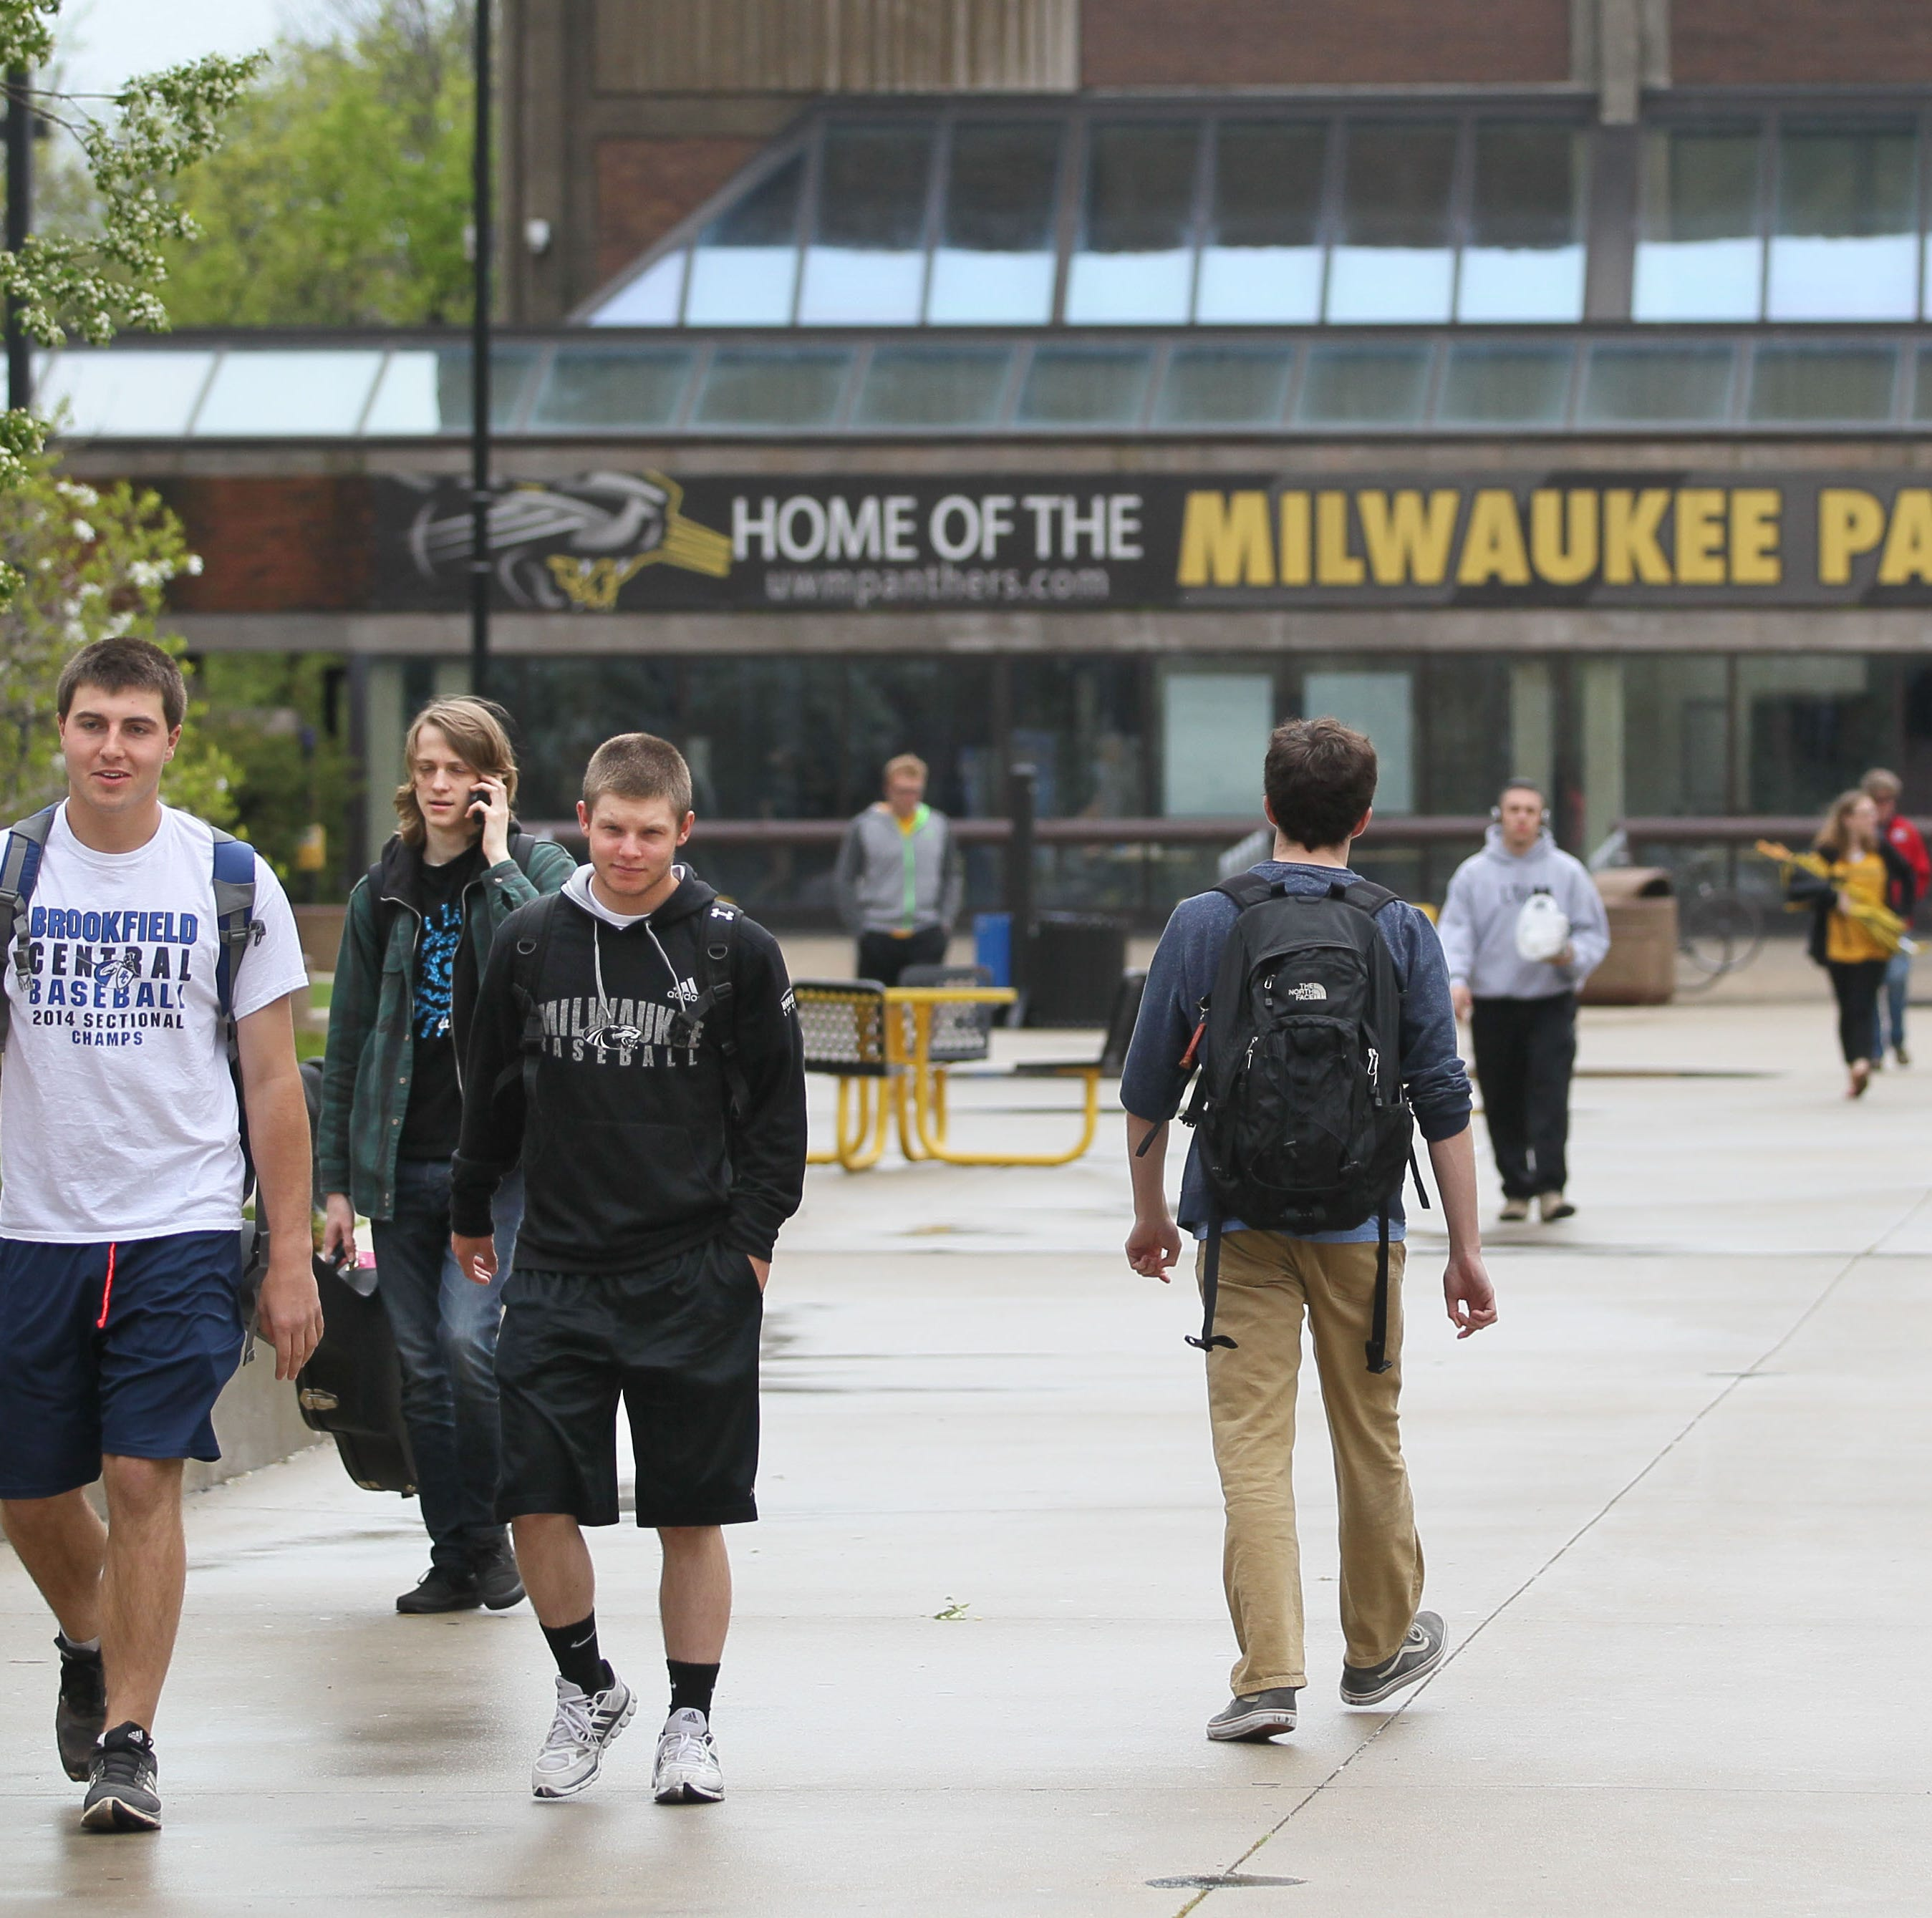 Shrinking tuition revenue, growing expenses put UW campuses in potentially precarious position